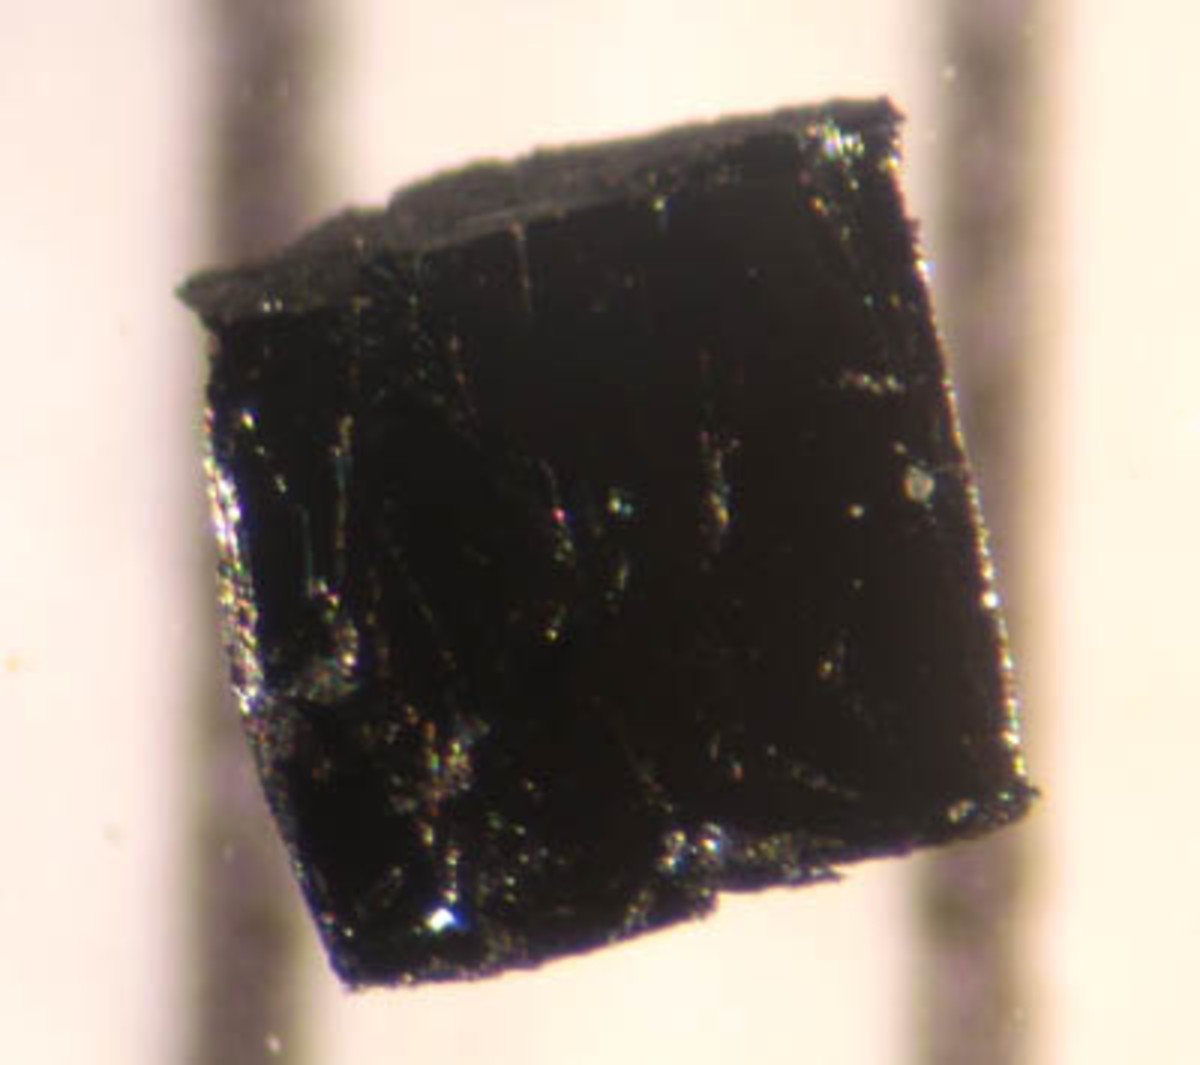 A small sample of the high-temperature superconductor, Bi-2223